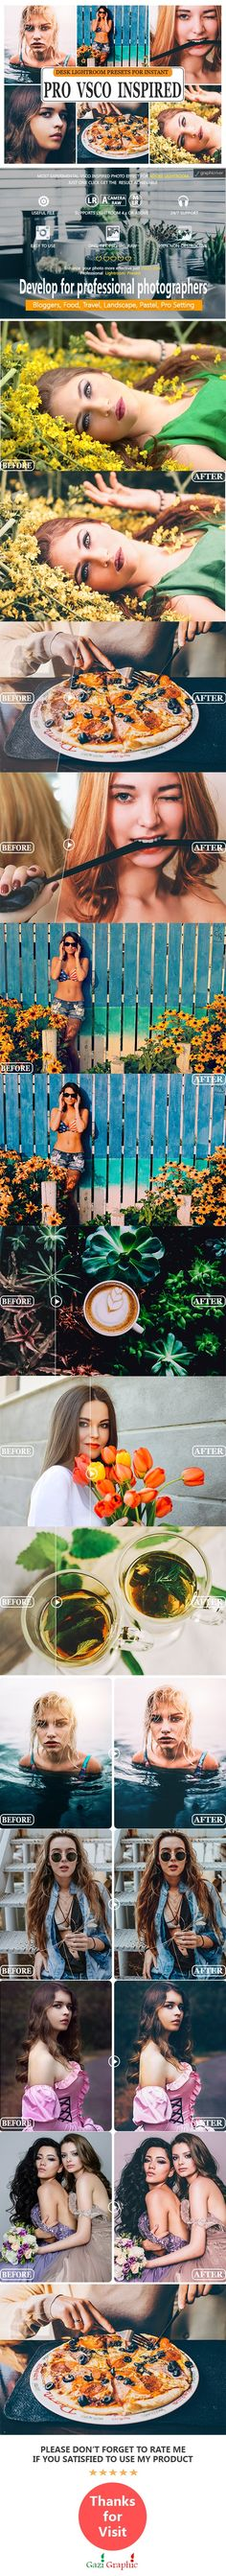 Buy Pro Vsco Inspired Lightroom Presets by Gazi_Graphic on GraphicRiver. Pro Vsco Inspired Lightroom Presets: Gladly presenting a collection of Pro Vsco Inspired LR presets for Adobe Lightro. Professional Lightroom Presets, Adobe Photoshop Lightroom, Photoshop Actions, Vsco Presets, Photography Filters, Perfect Photo, Photo Editing, Inspired